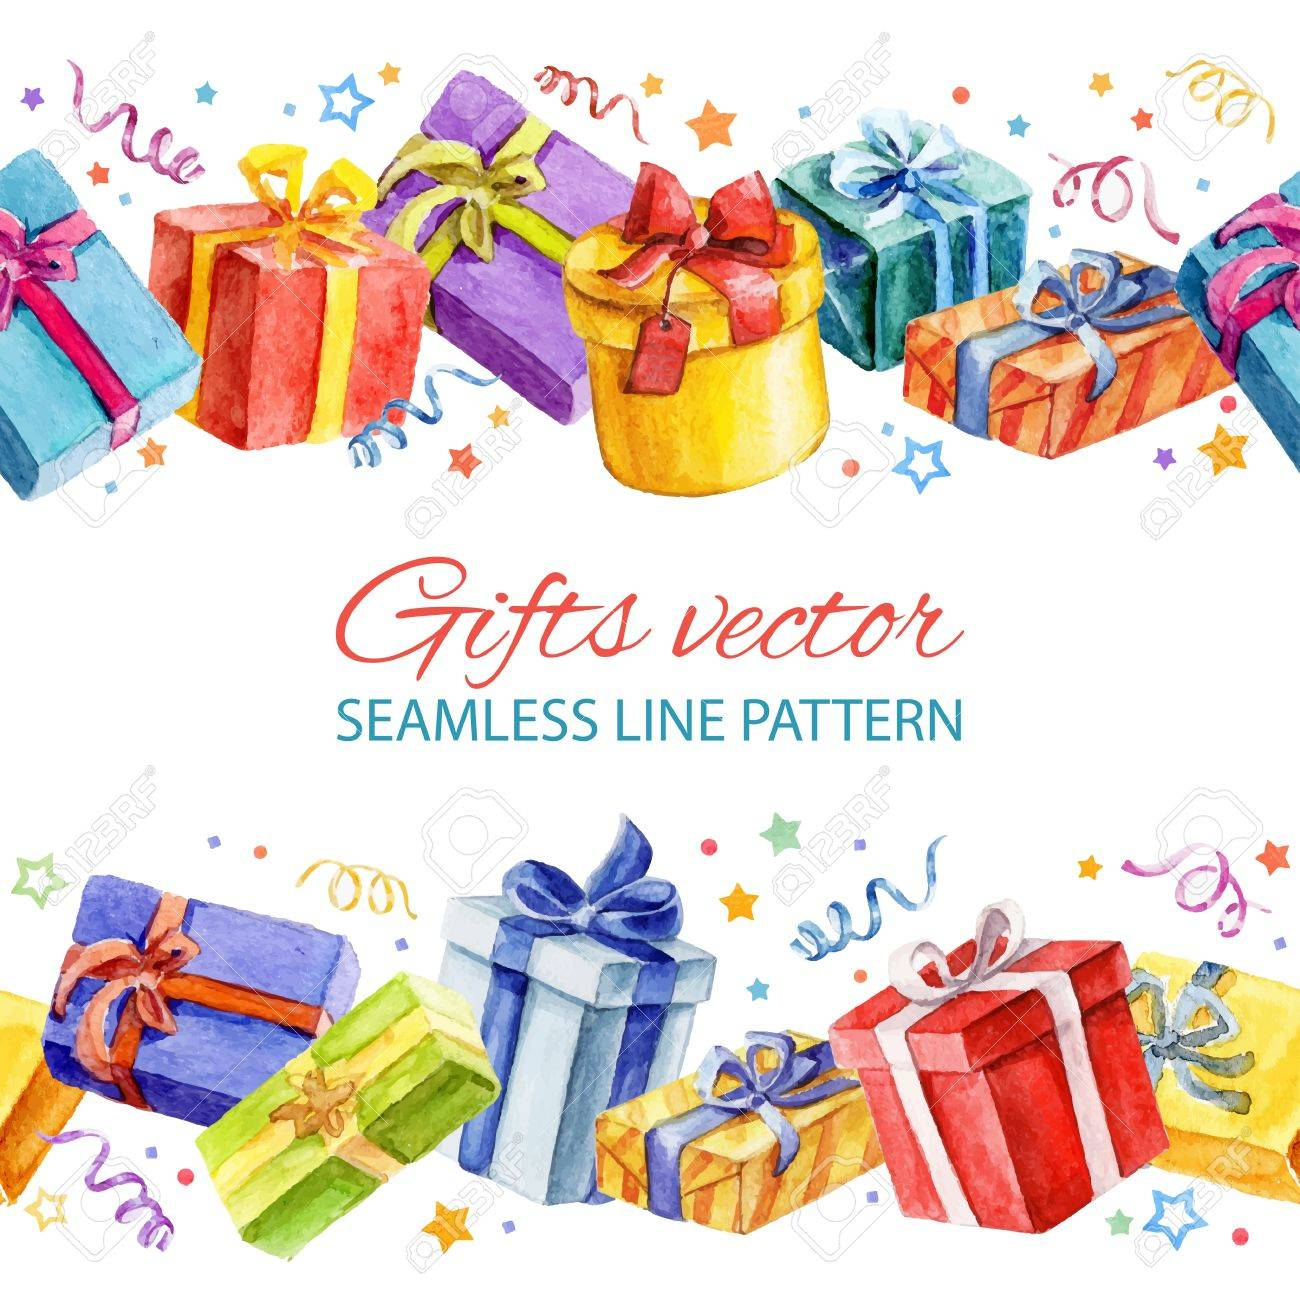 Seamless line pattern with Christmas and New Year gifts. watercolor. - 33147935